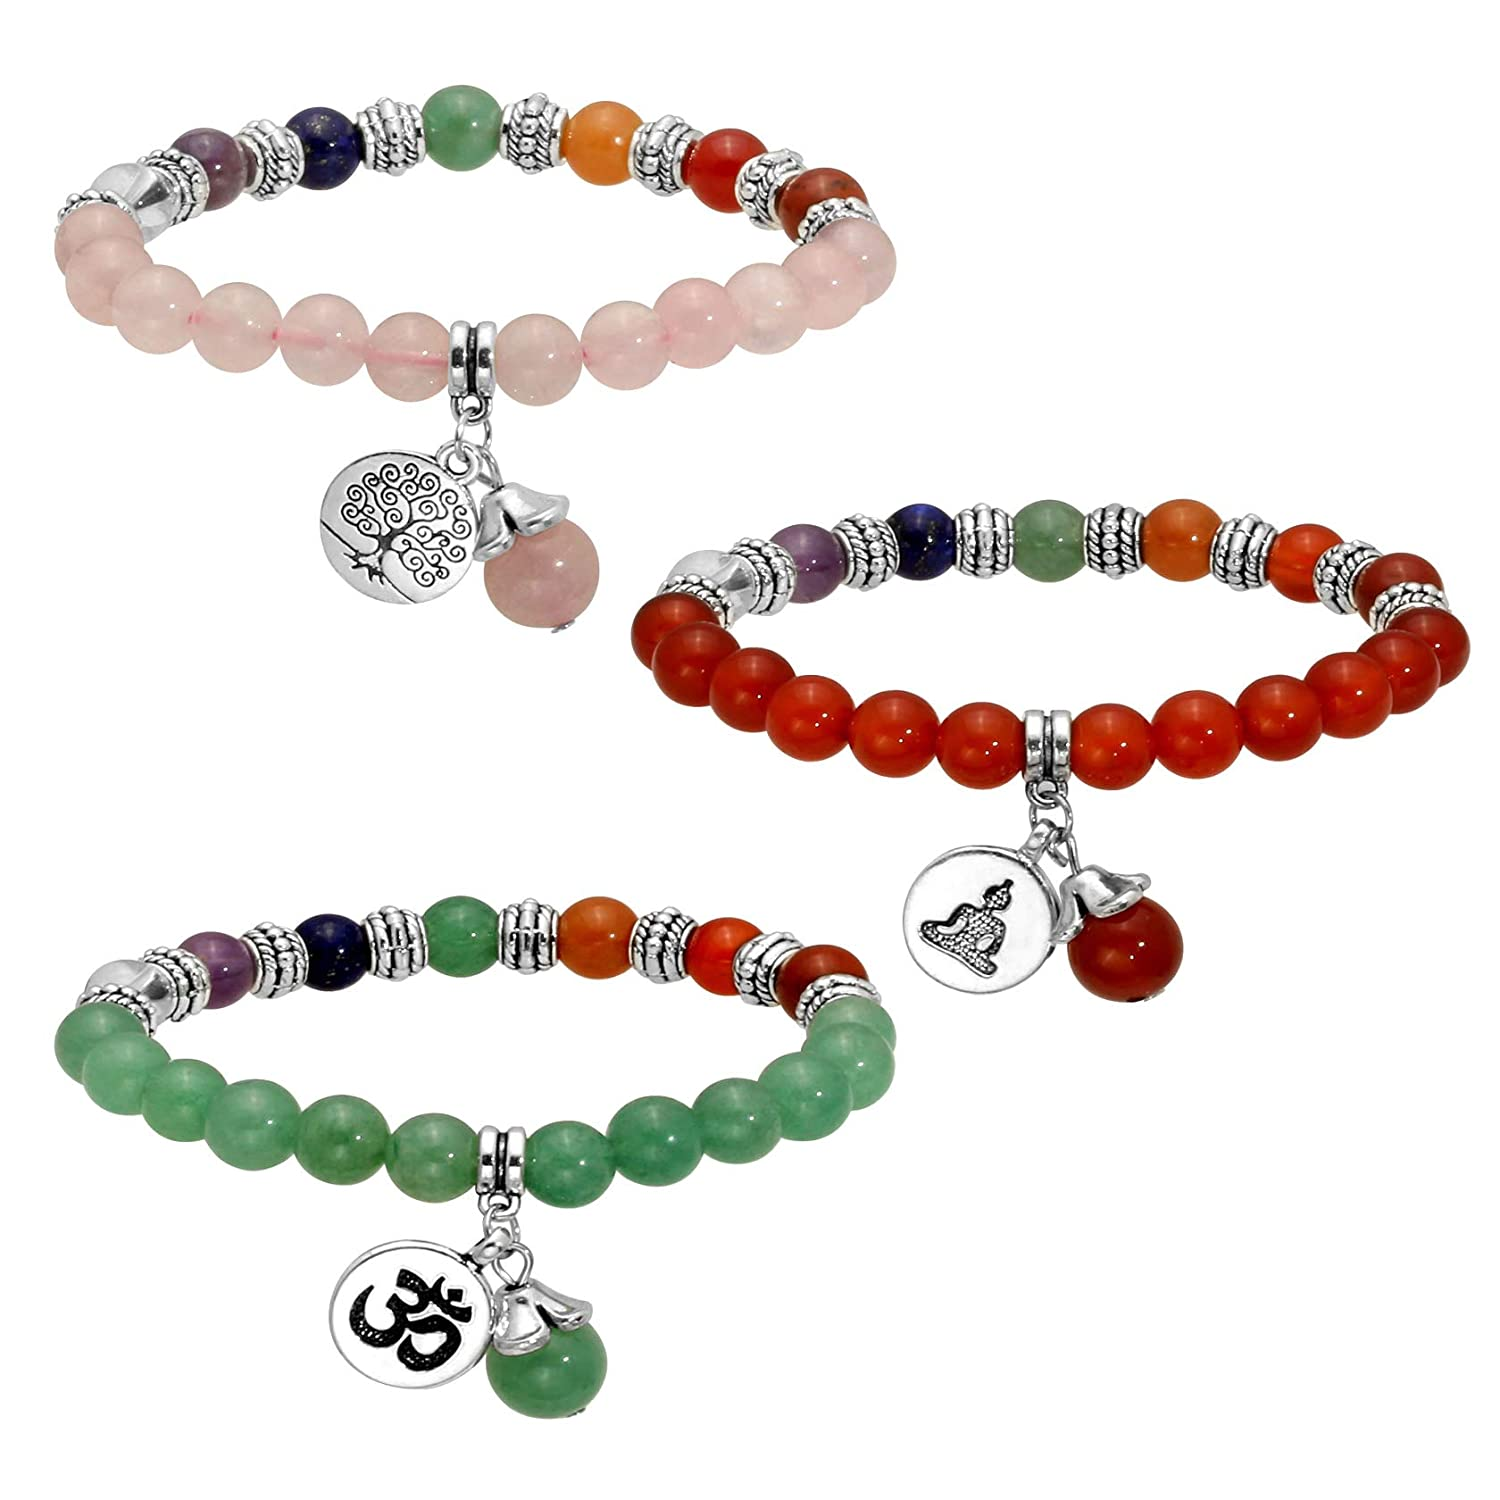 MILAKOO 7 Chakra Beads Bracelet with Tree of Life//Lotus//OM Symbol Yoga Meditation Healing Bracelet